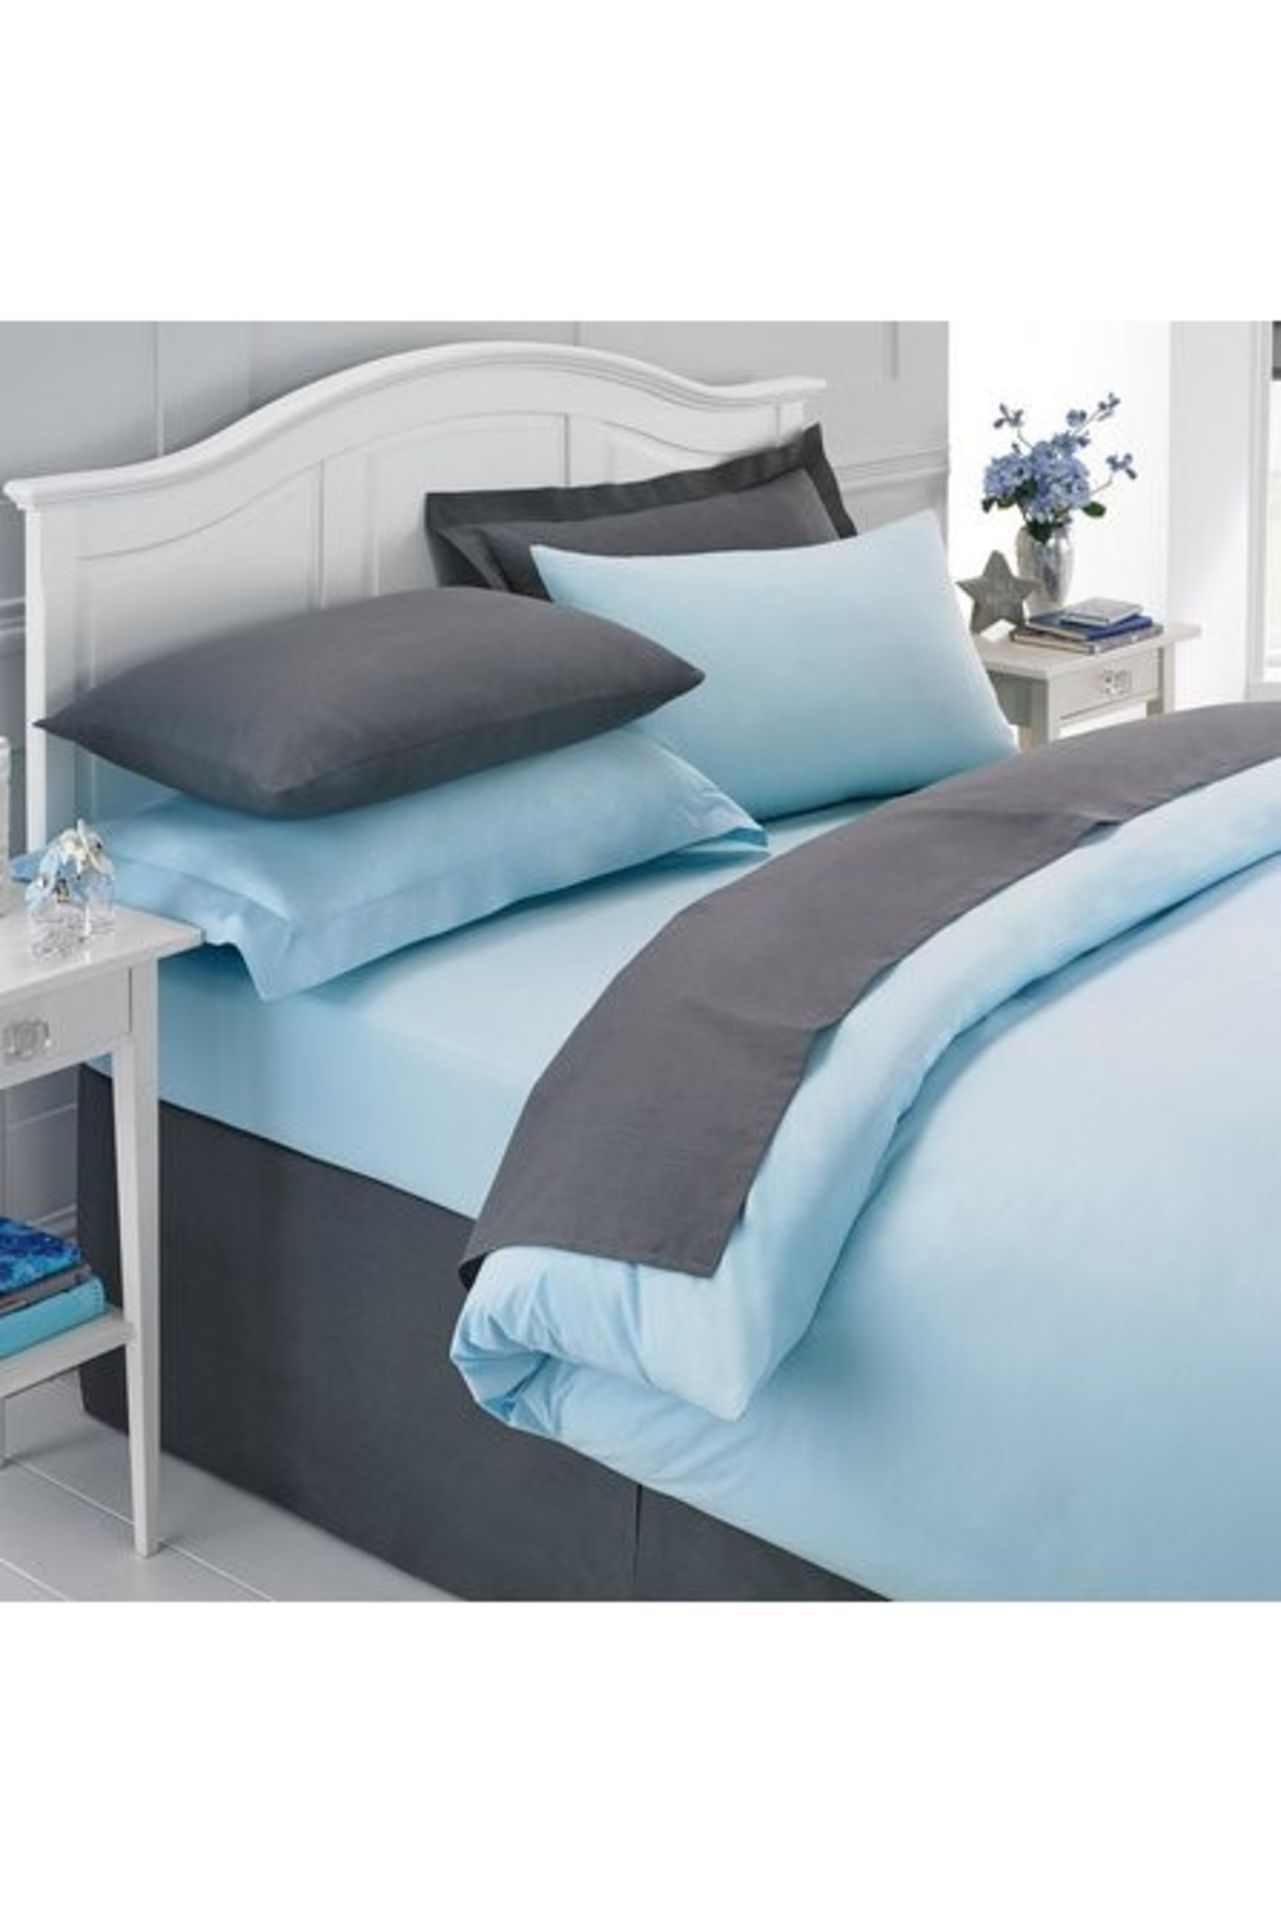 Lot 24 - 1 BAGGED PERCALE PLAIN DYED SINGLE DUVET COVER IN DUCK EGG / RRP £54.99 (PUBLIC VIEWING AVAILABLE)